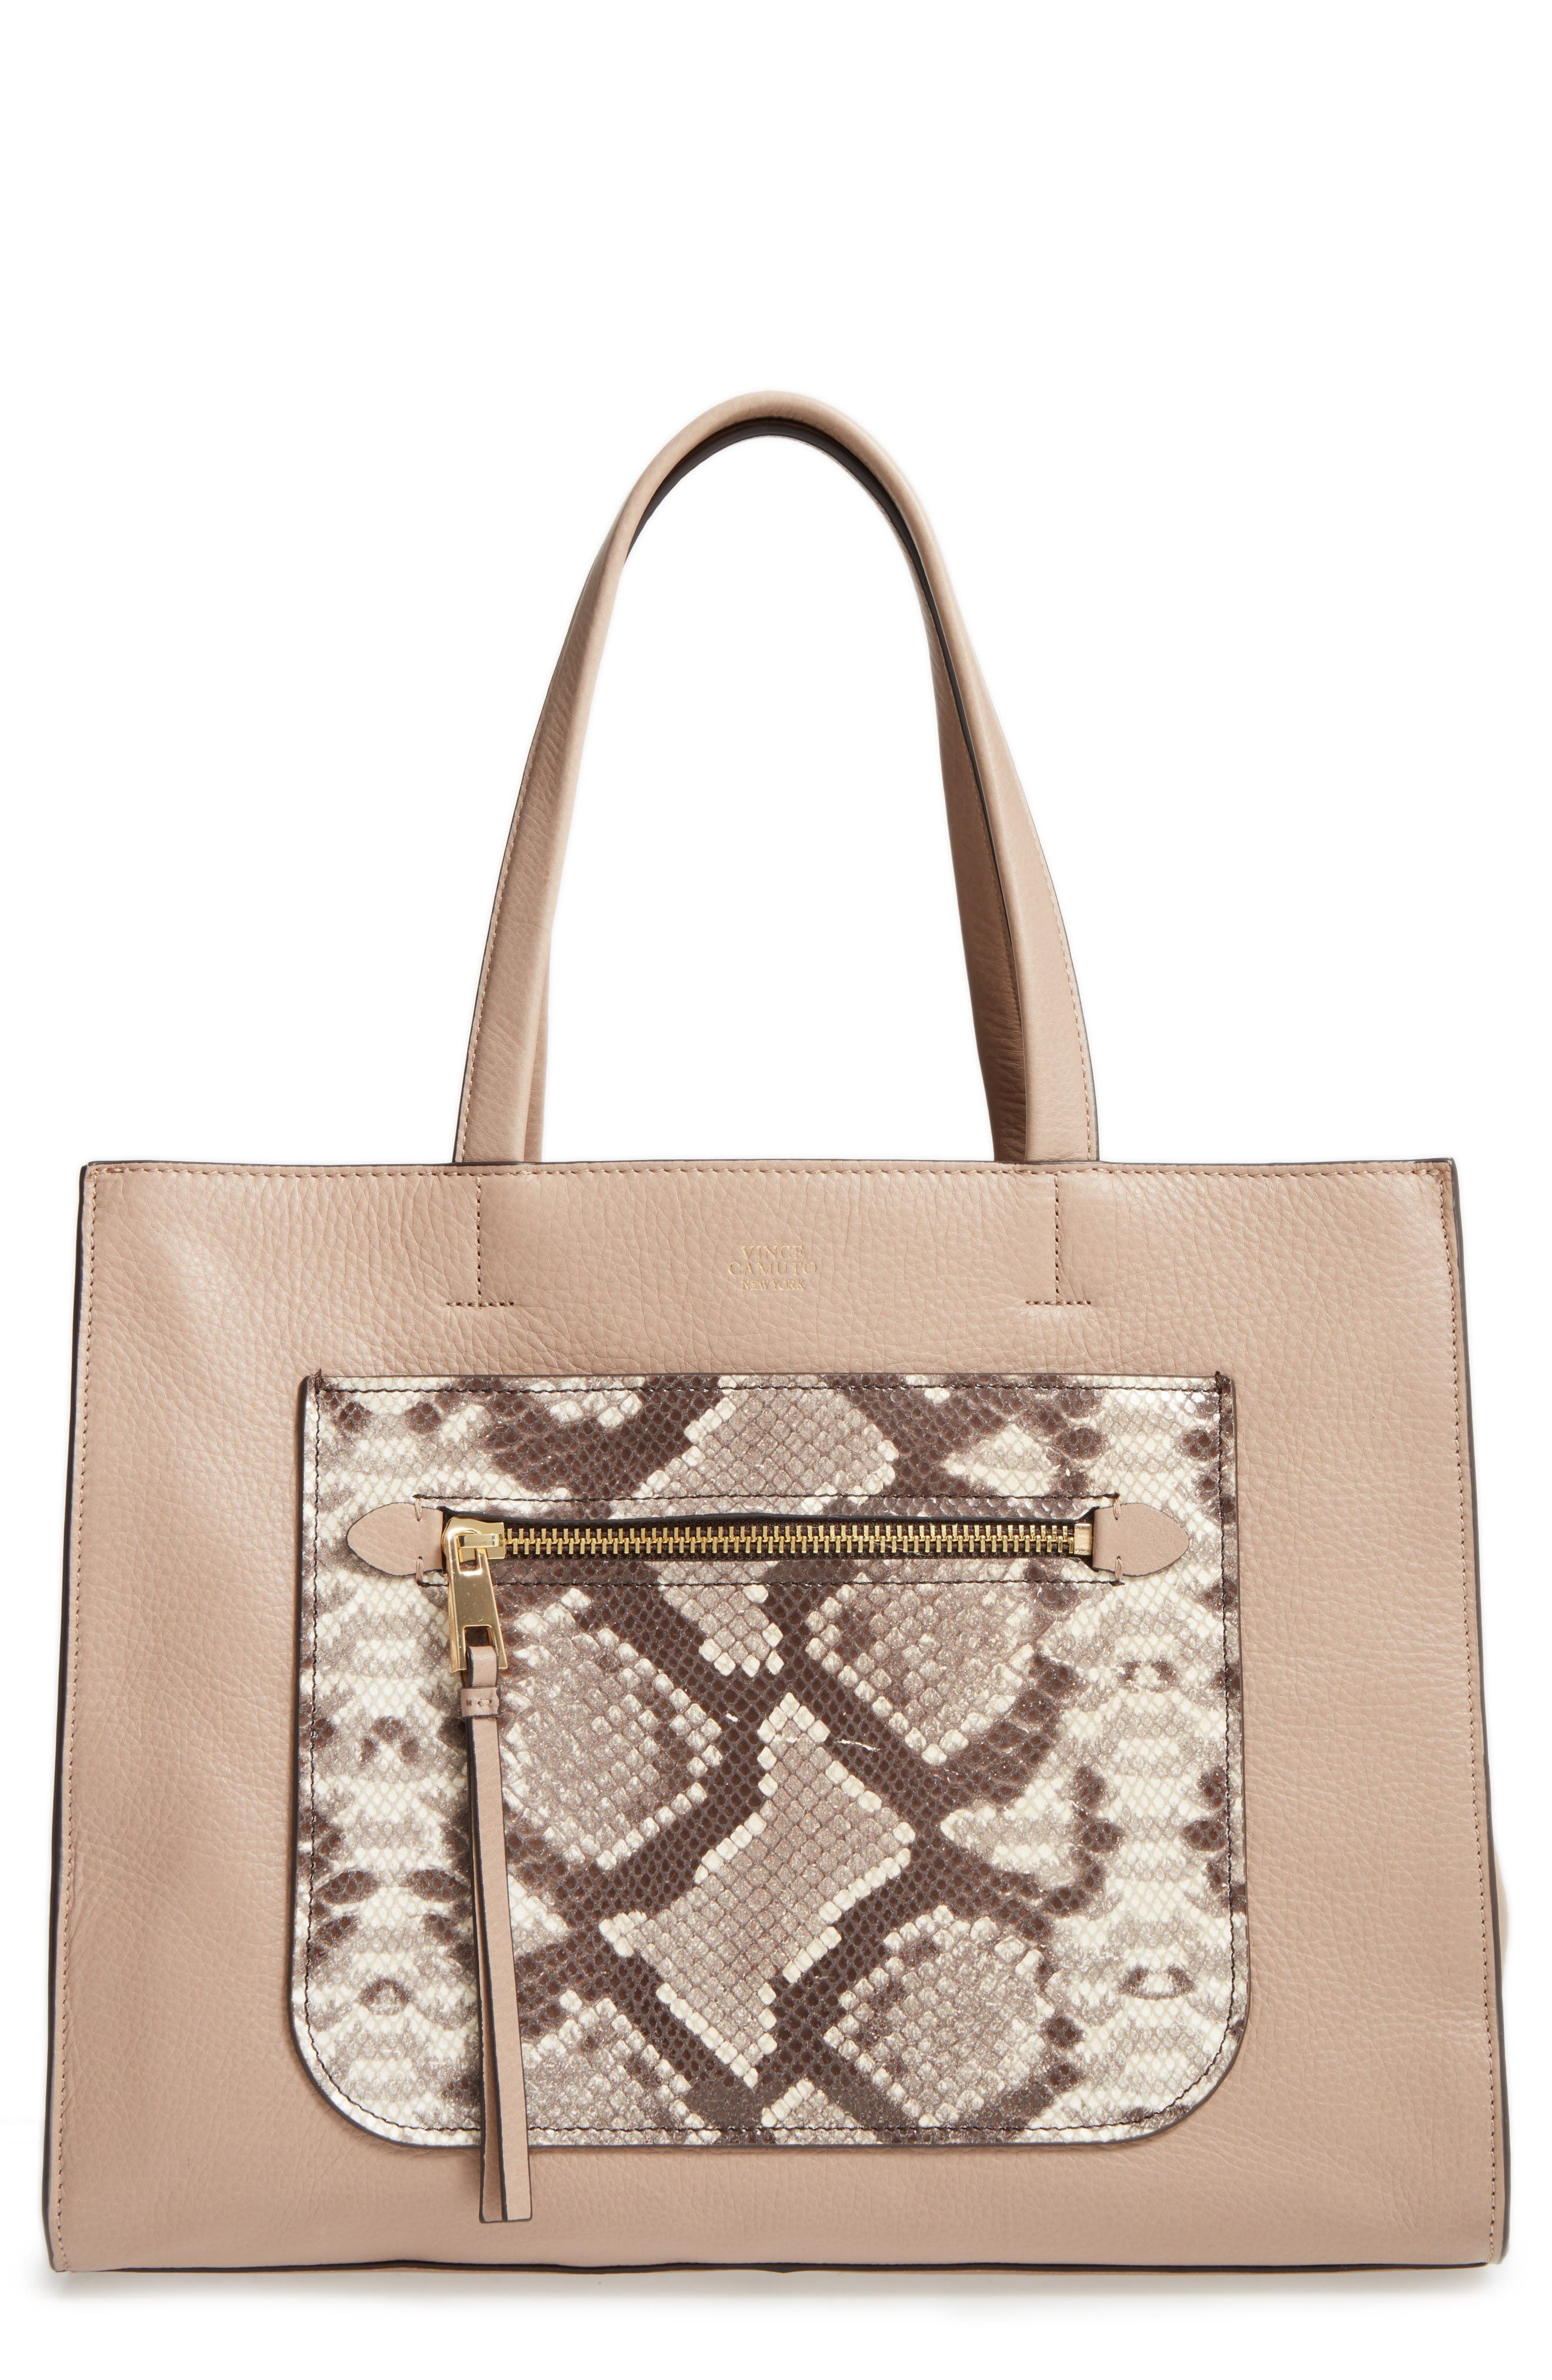 Alternate Image 1 Selected - Vince Camuto Elvan Leather Tote